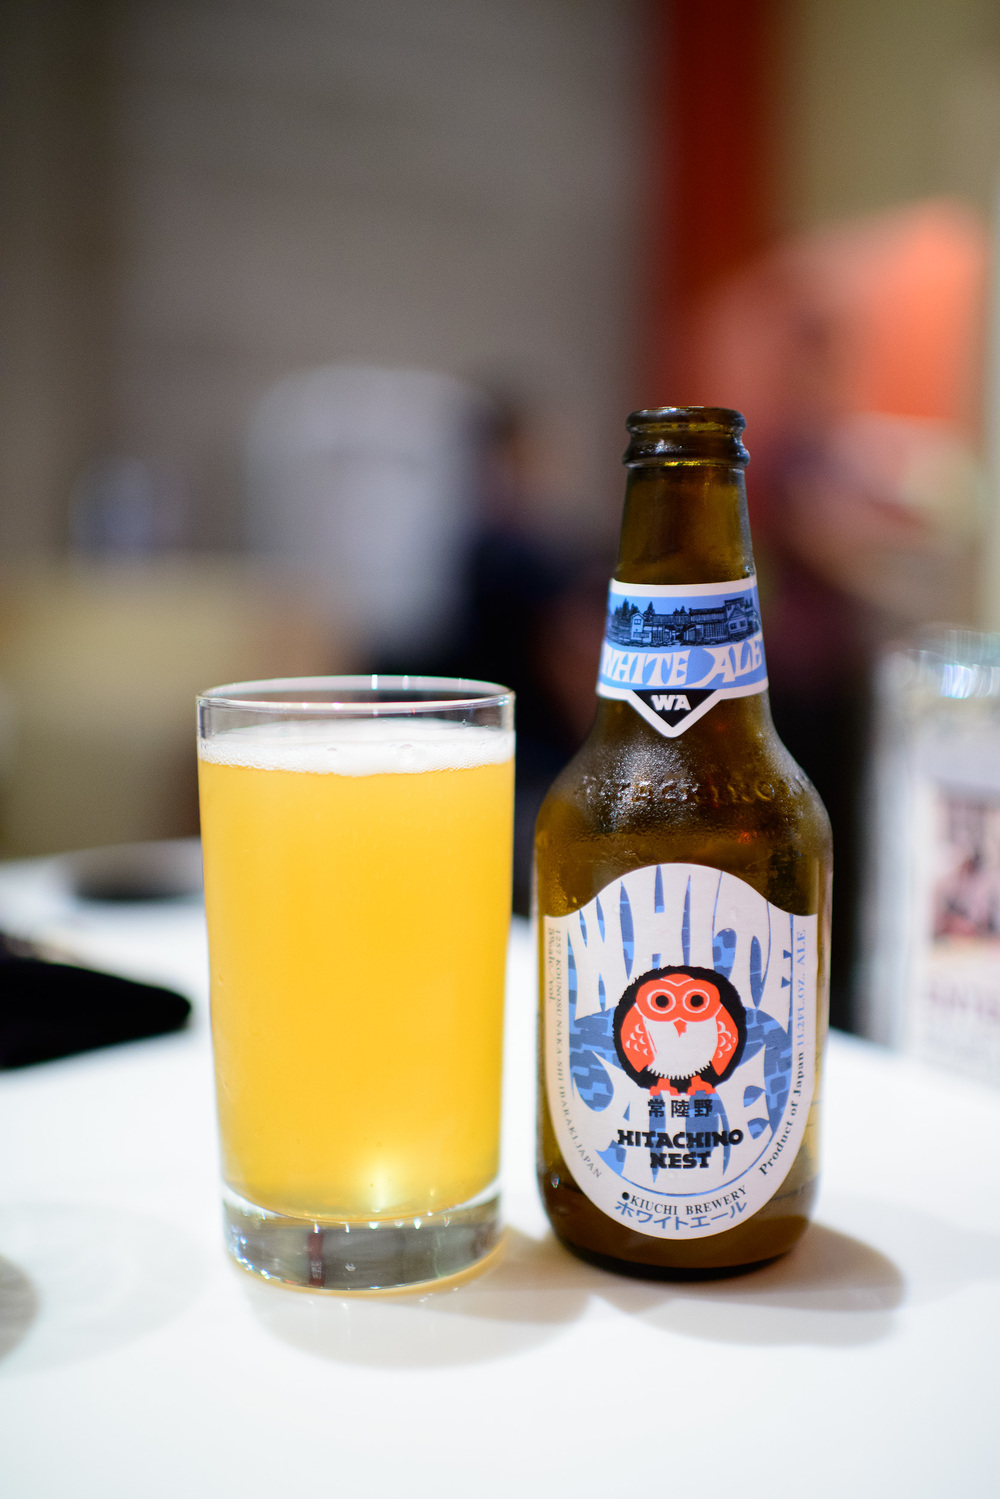 Hitachino white ($9)